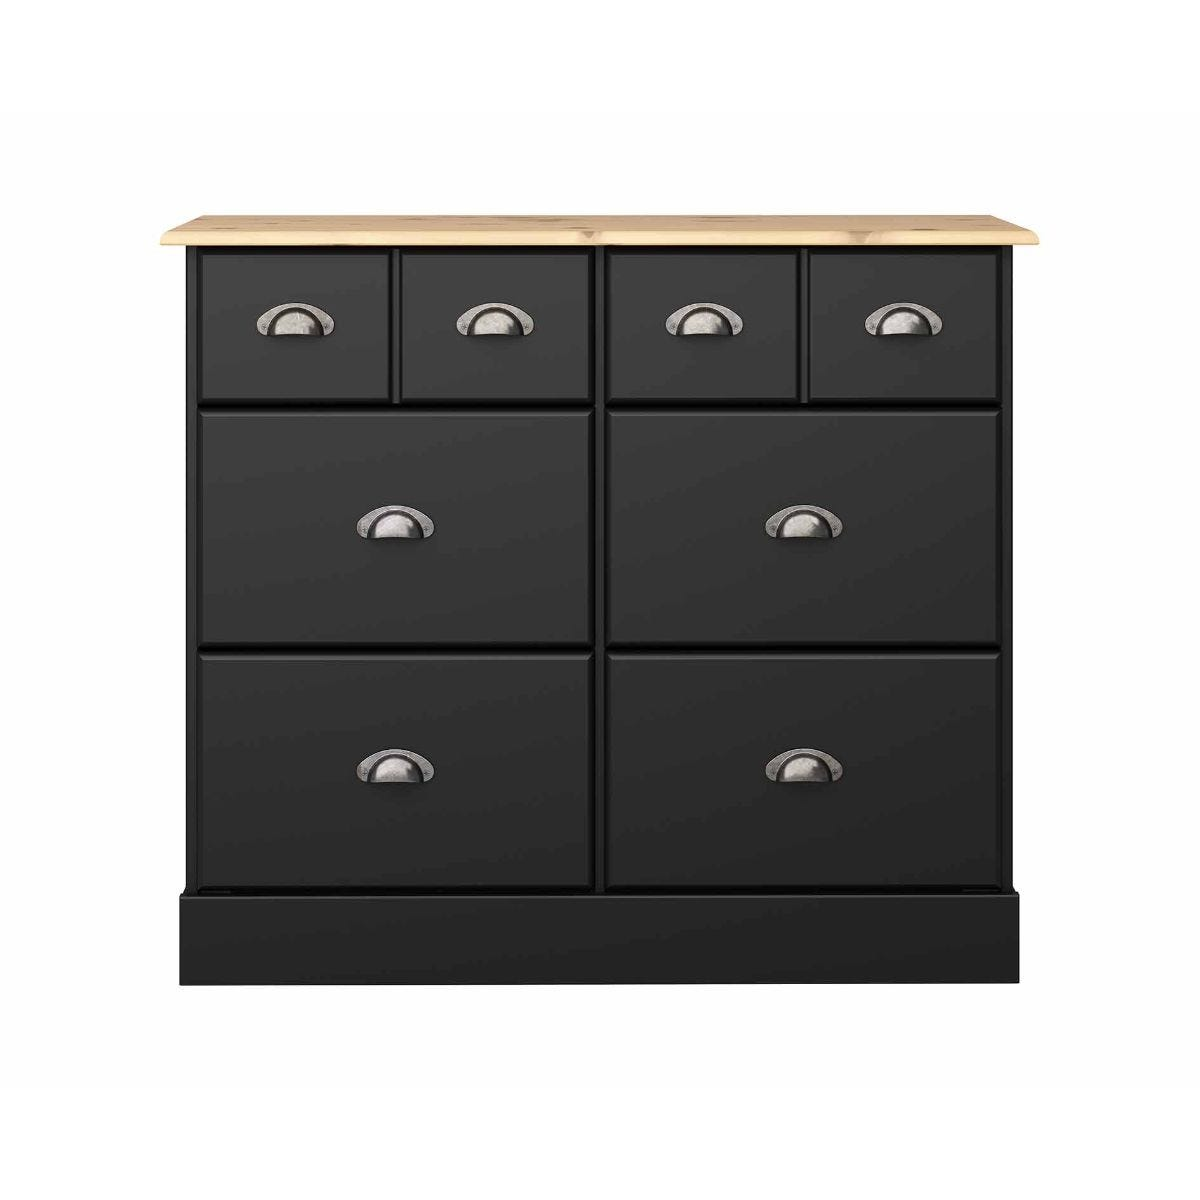 Steens Nola 4 Over 4 Wide Chest of Drawers, Black